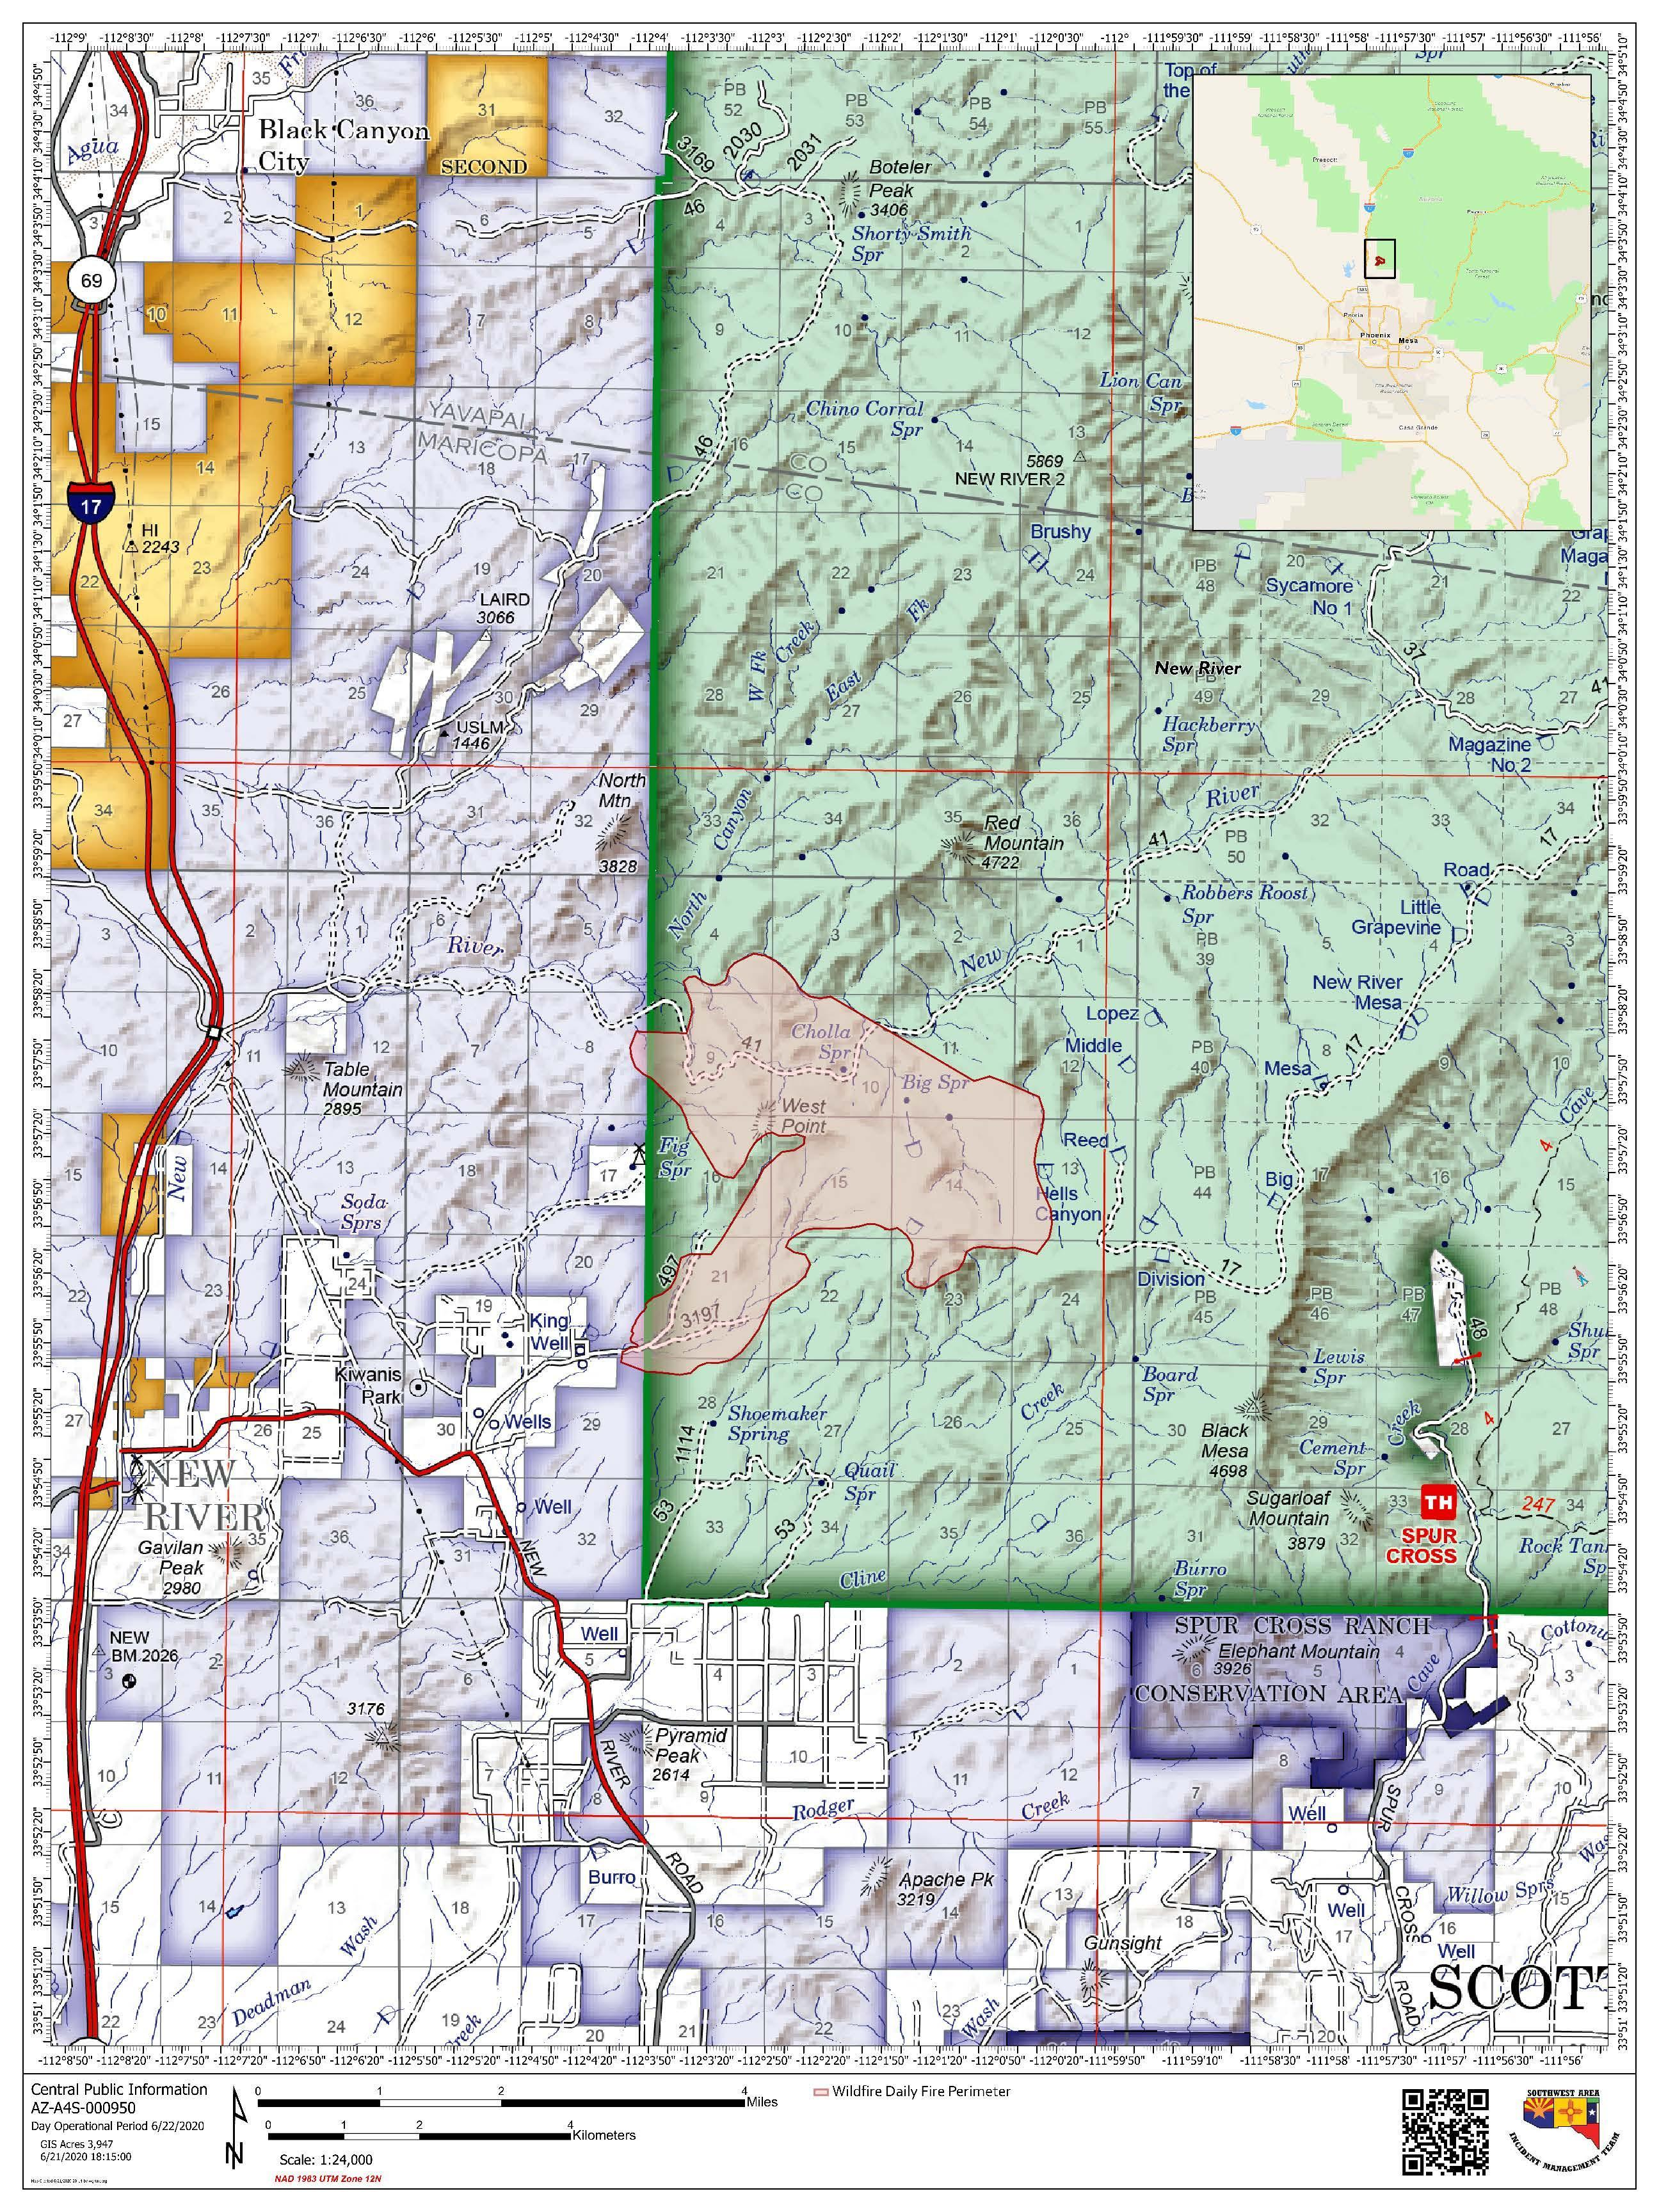 Public Map of the Central Fire for June 22, 2020